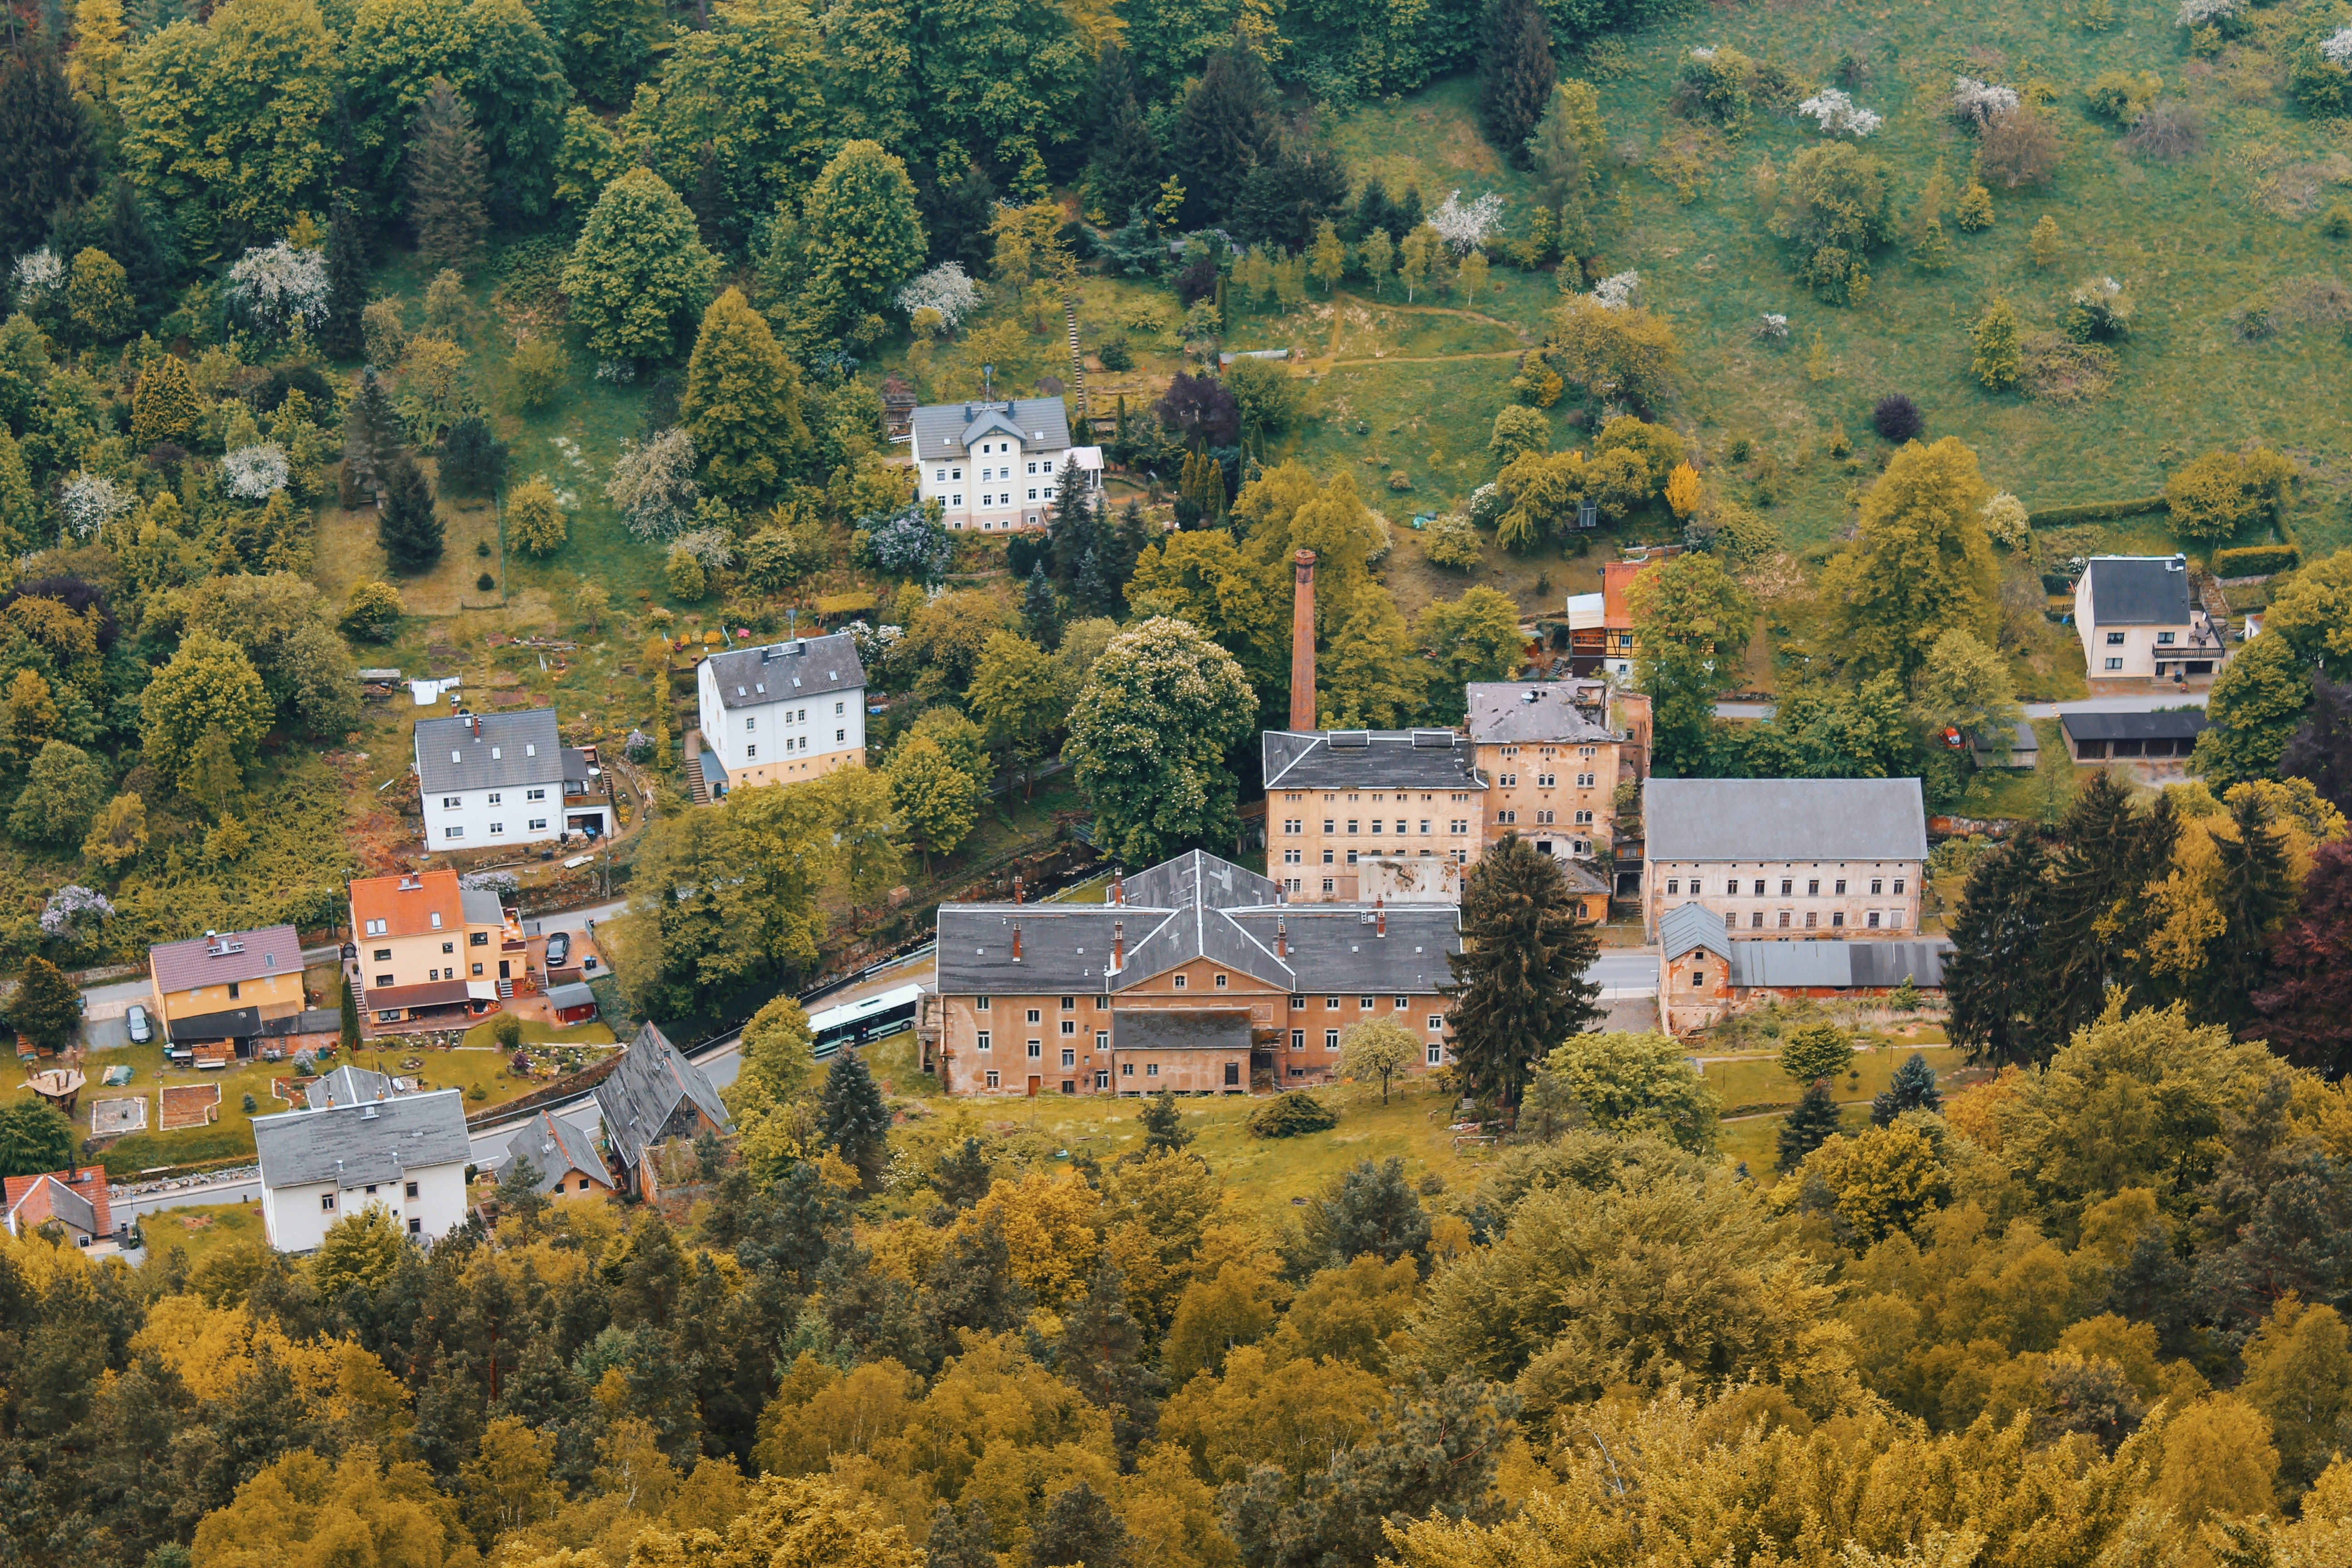 aerial photograph of village near trees